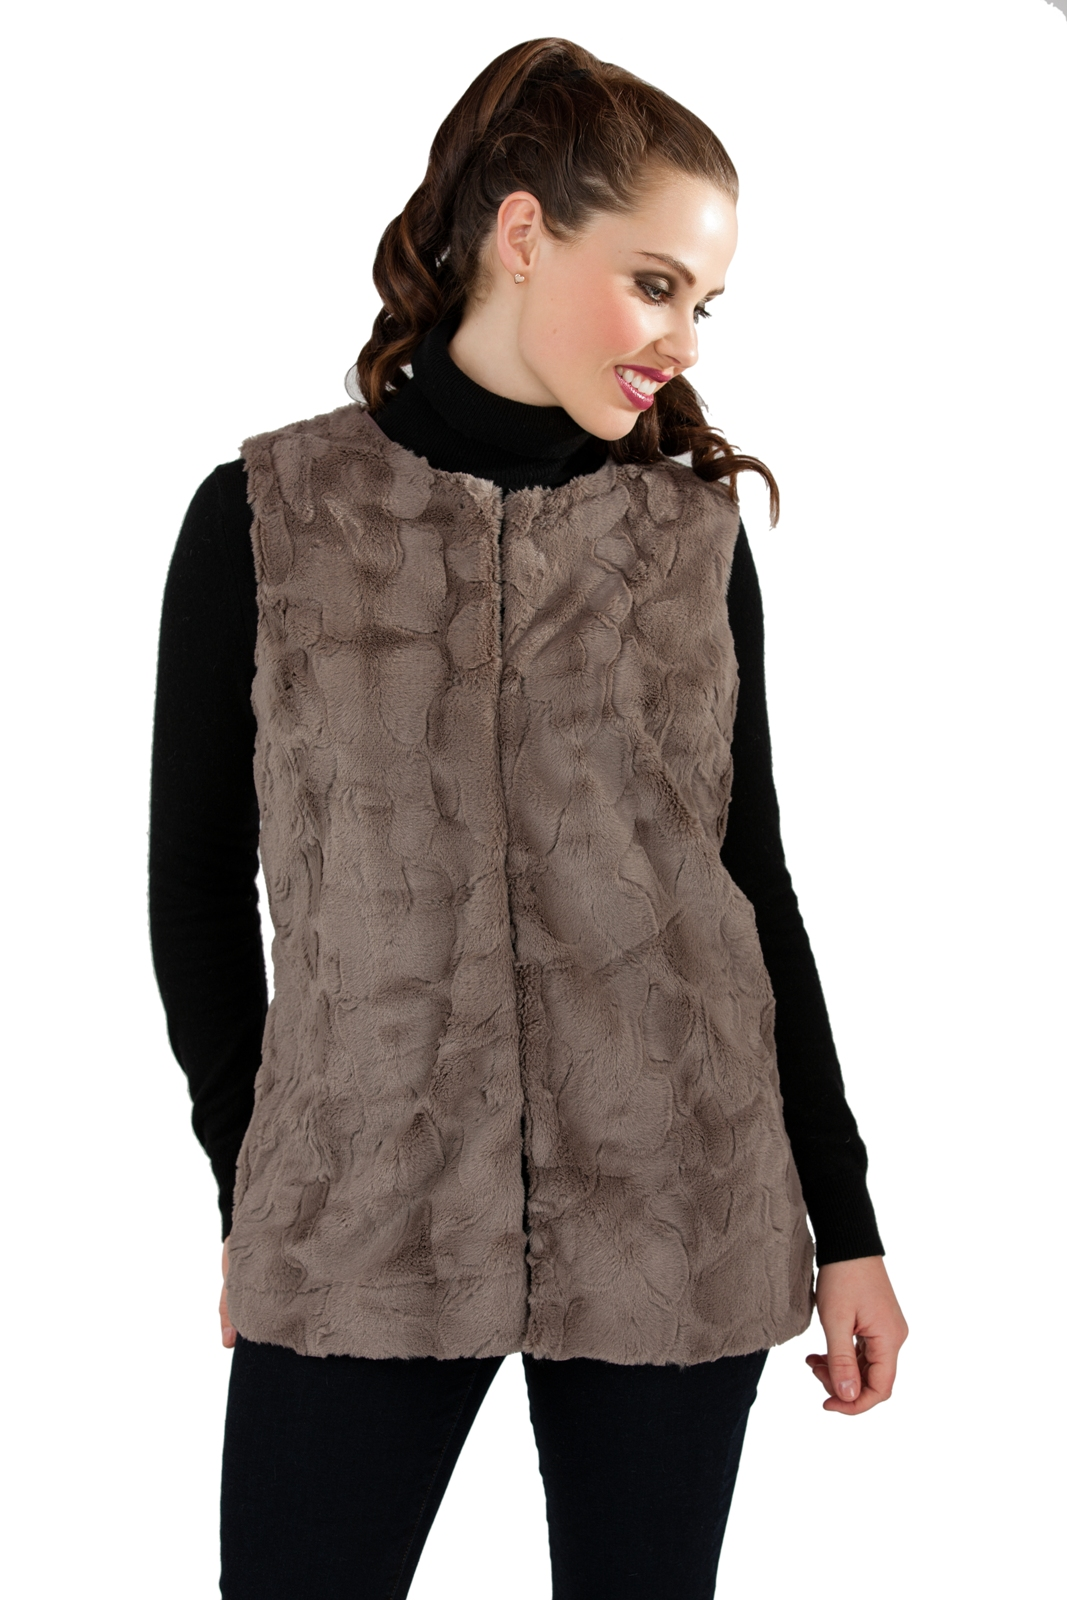 Shop for Women's Sleeveless Jacket at coolvloadx4.ga Free Shipping. Free Returns. All the time.